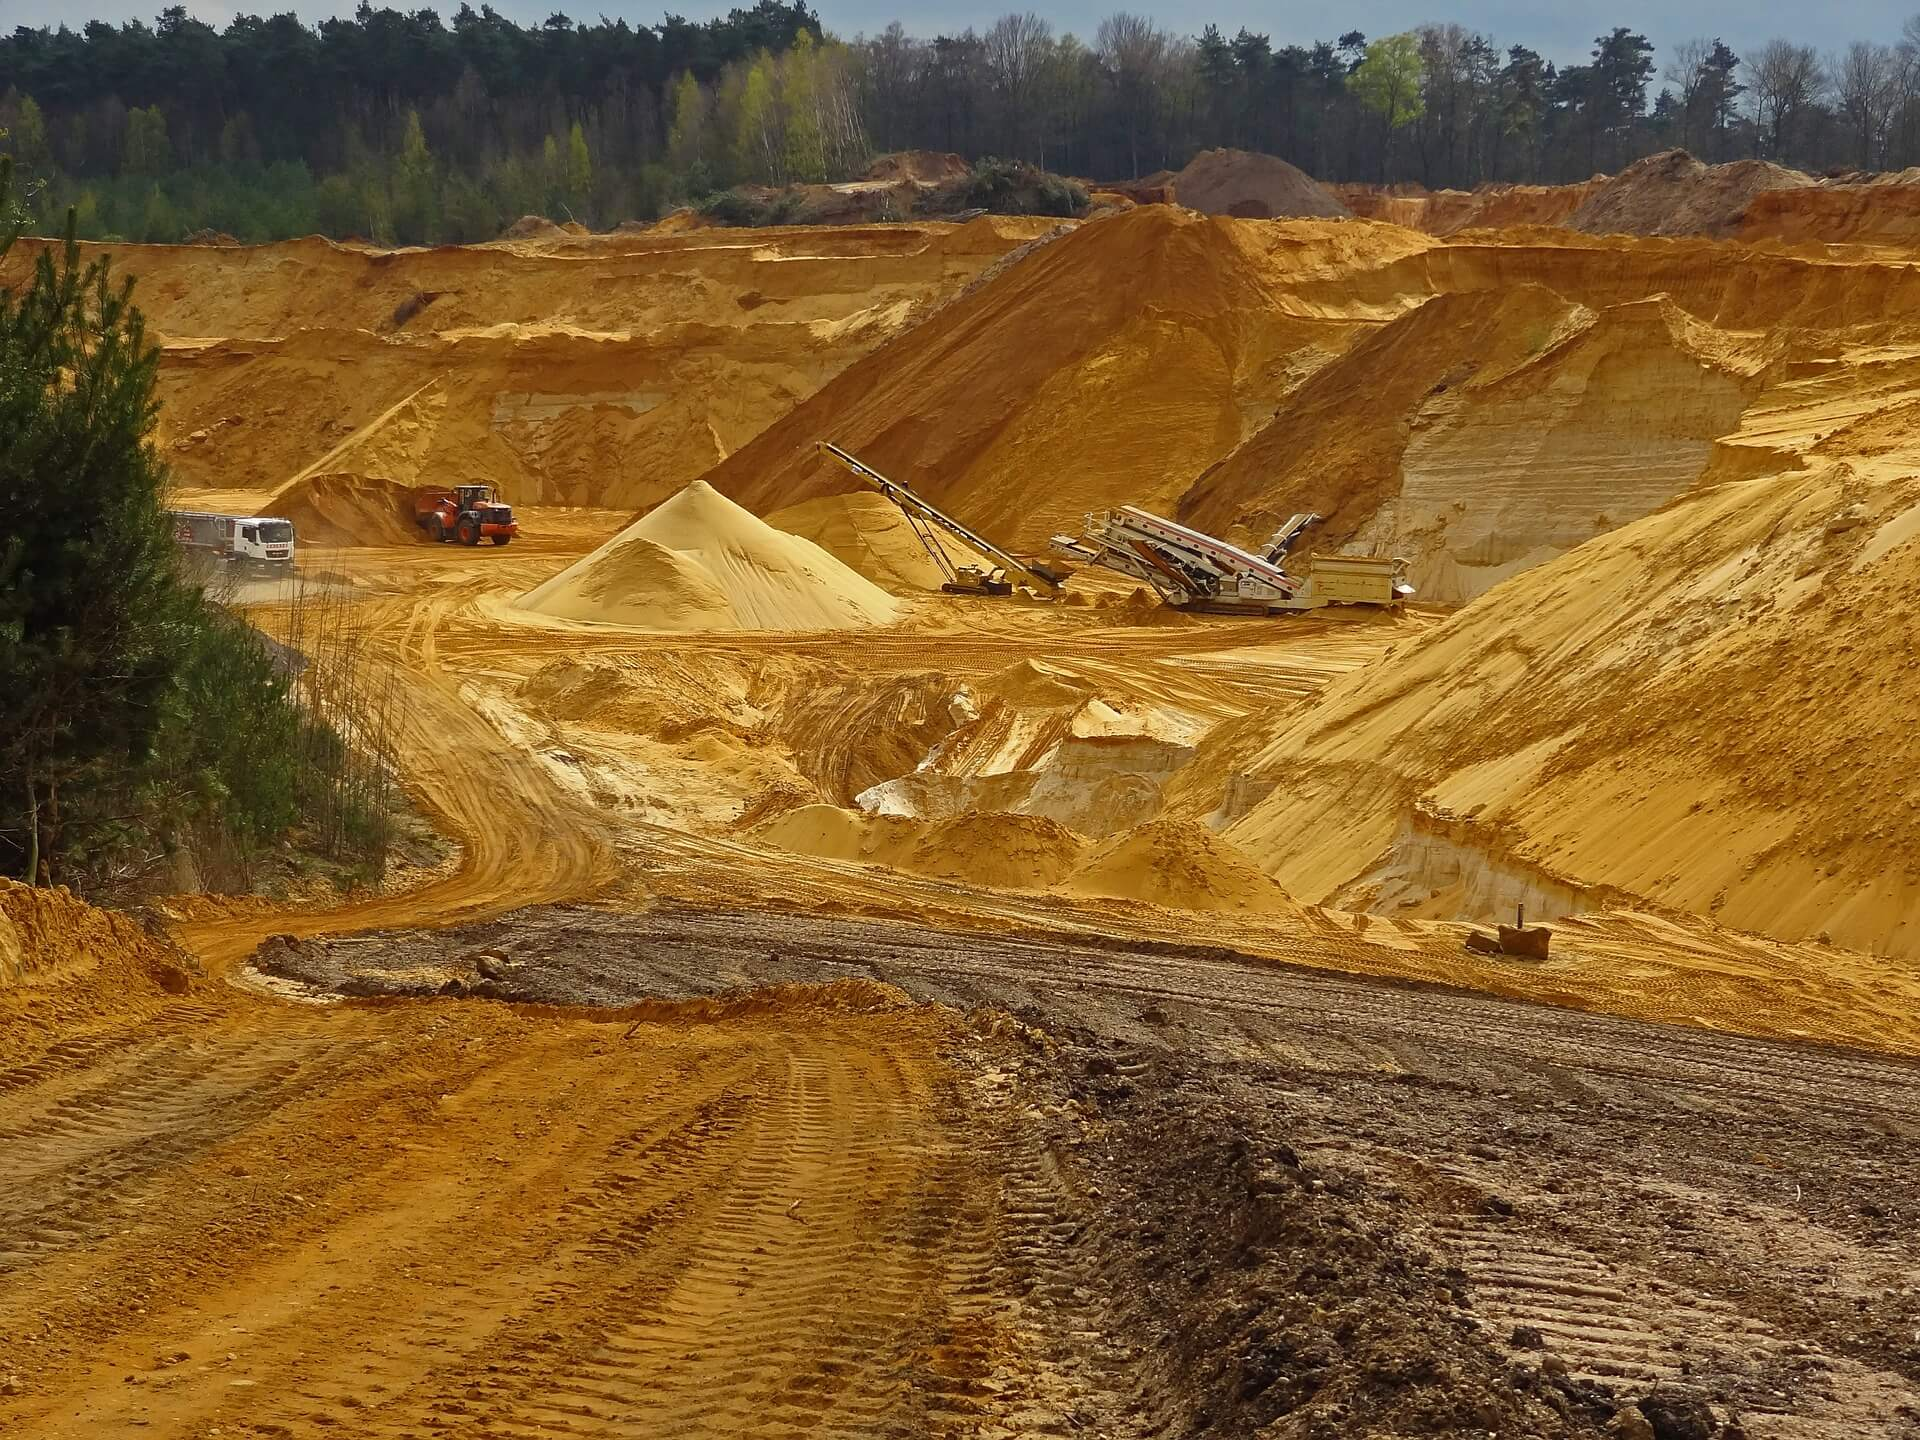 Open pit mining